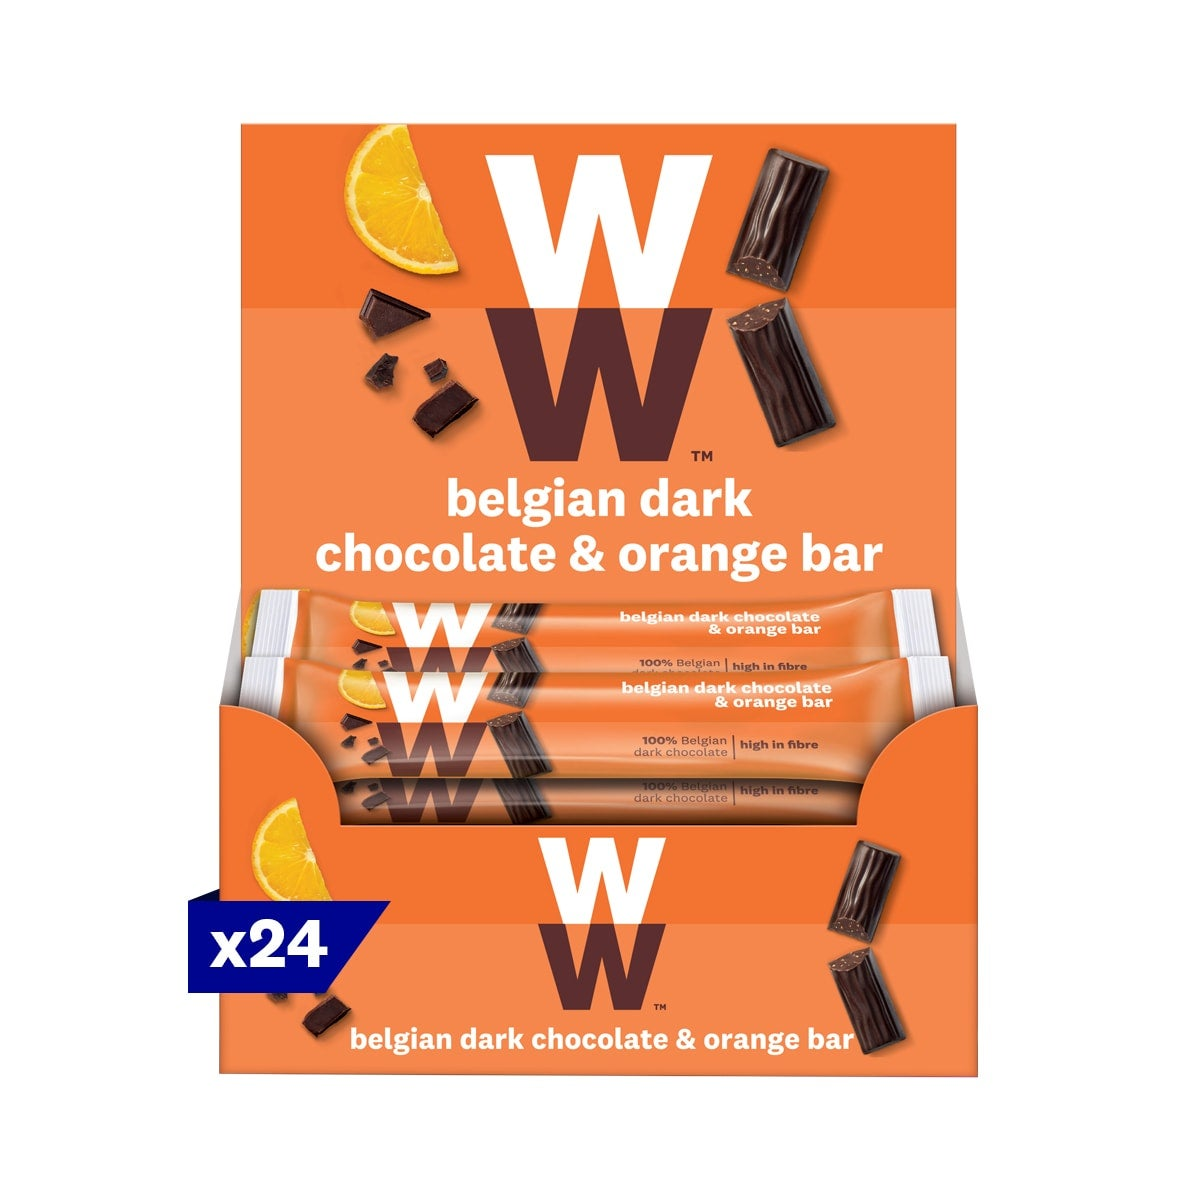 Box of 24, WW Belgian Dark Chocolate and Orange Bar, velvety smooth dark chocolate, dried orange pieces, 3 SmartPoints values, suitable for vegetarians, gluten free